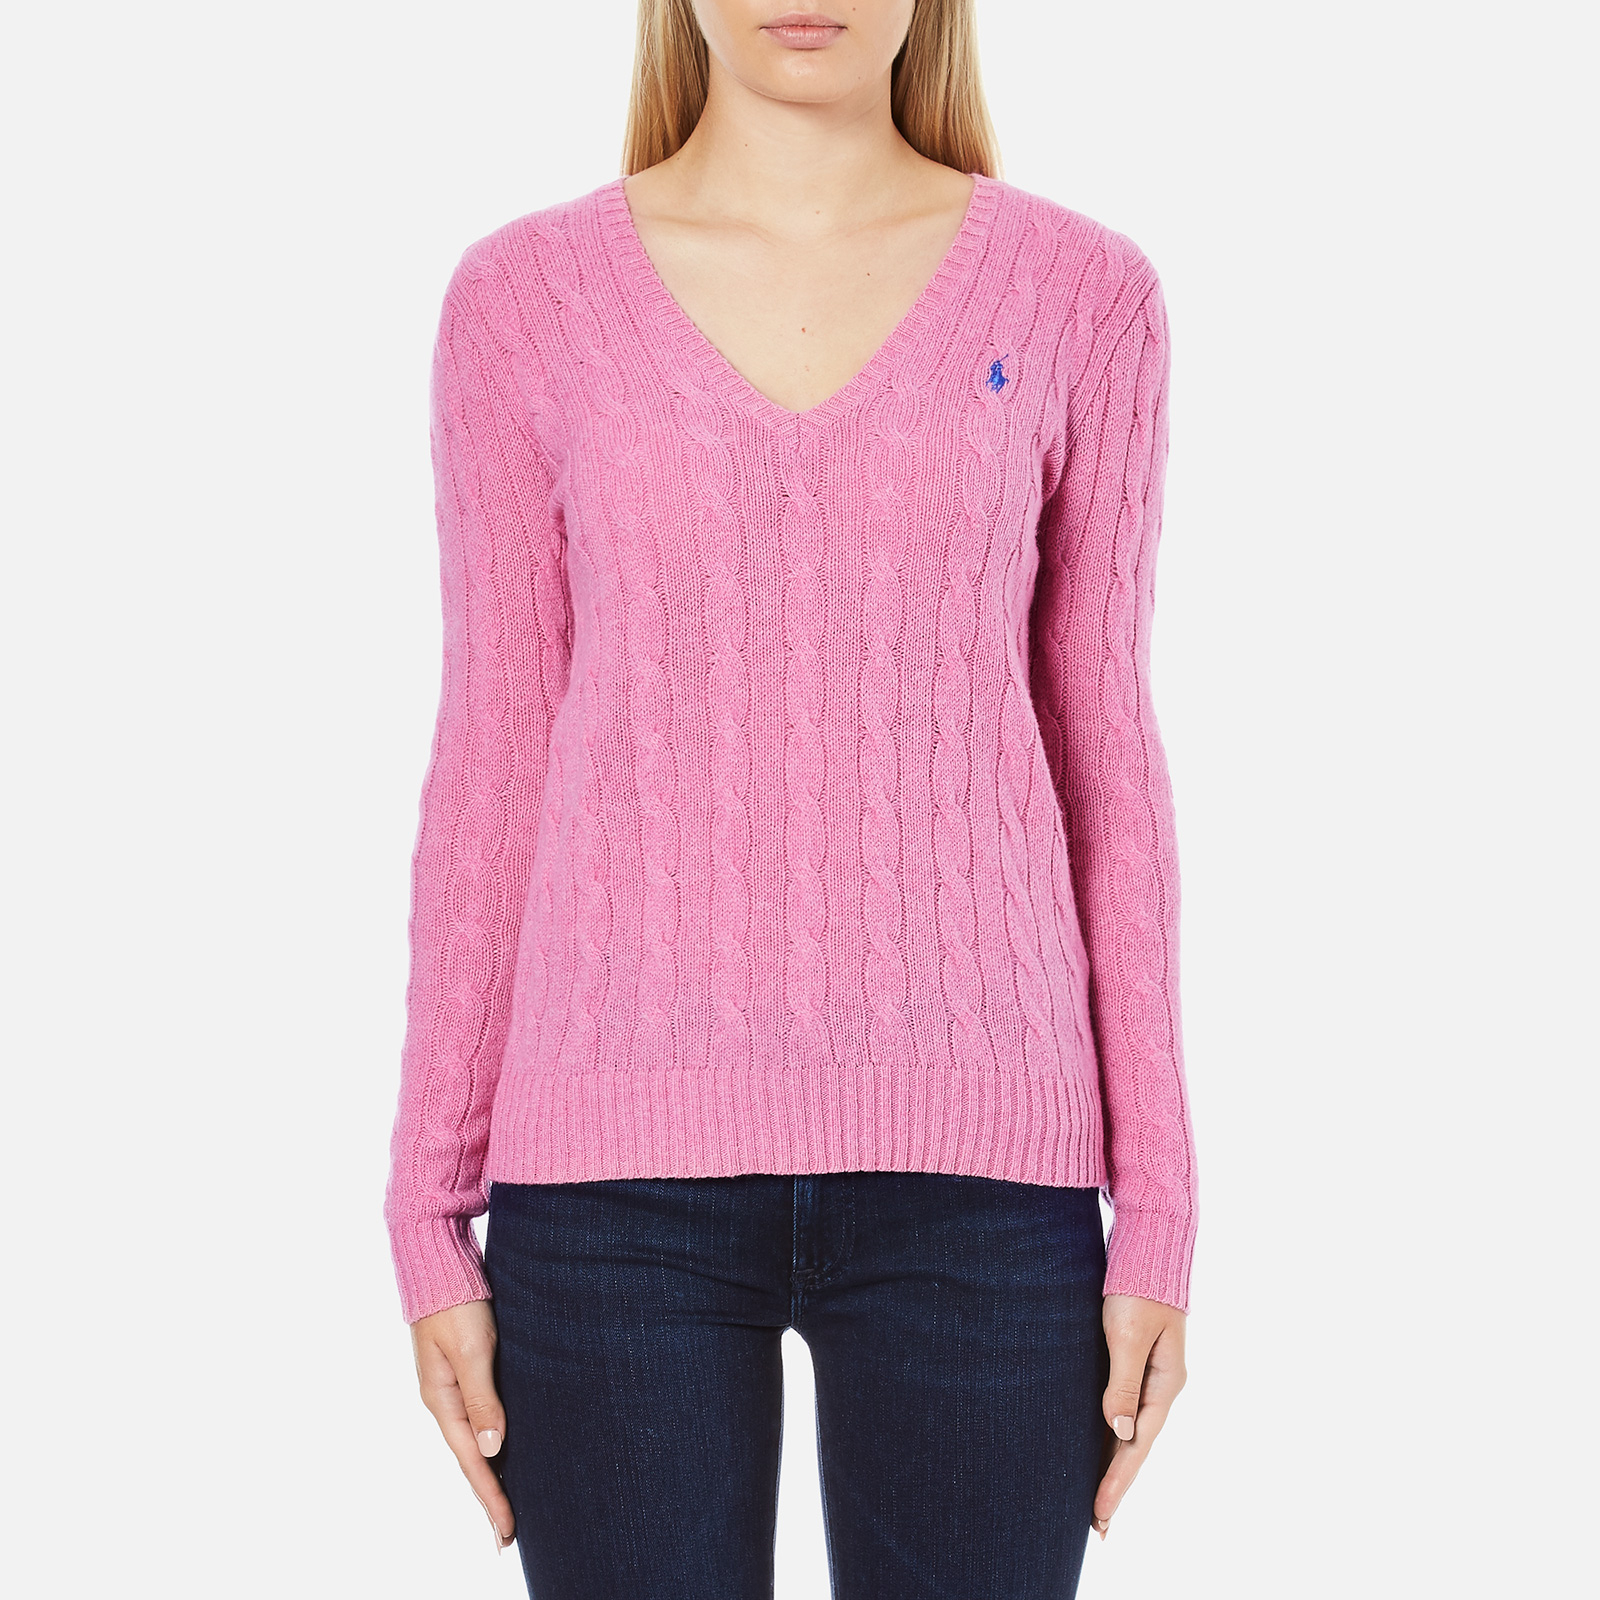 44105e70681f1a Polo Ralph Lauren Women's Kimberly Cashmere Blend Jumper - Wesley Pink  Heather - Free UK Delivery over £50